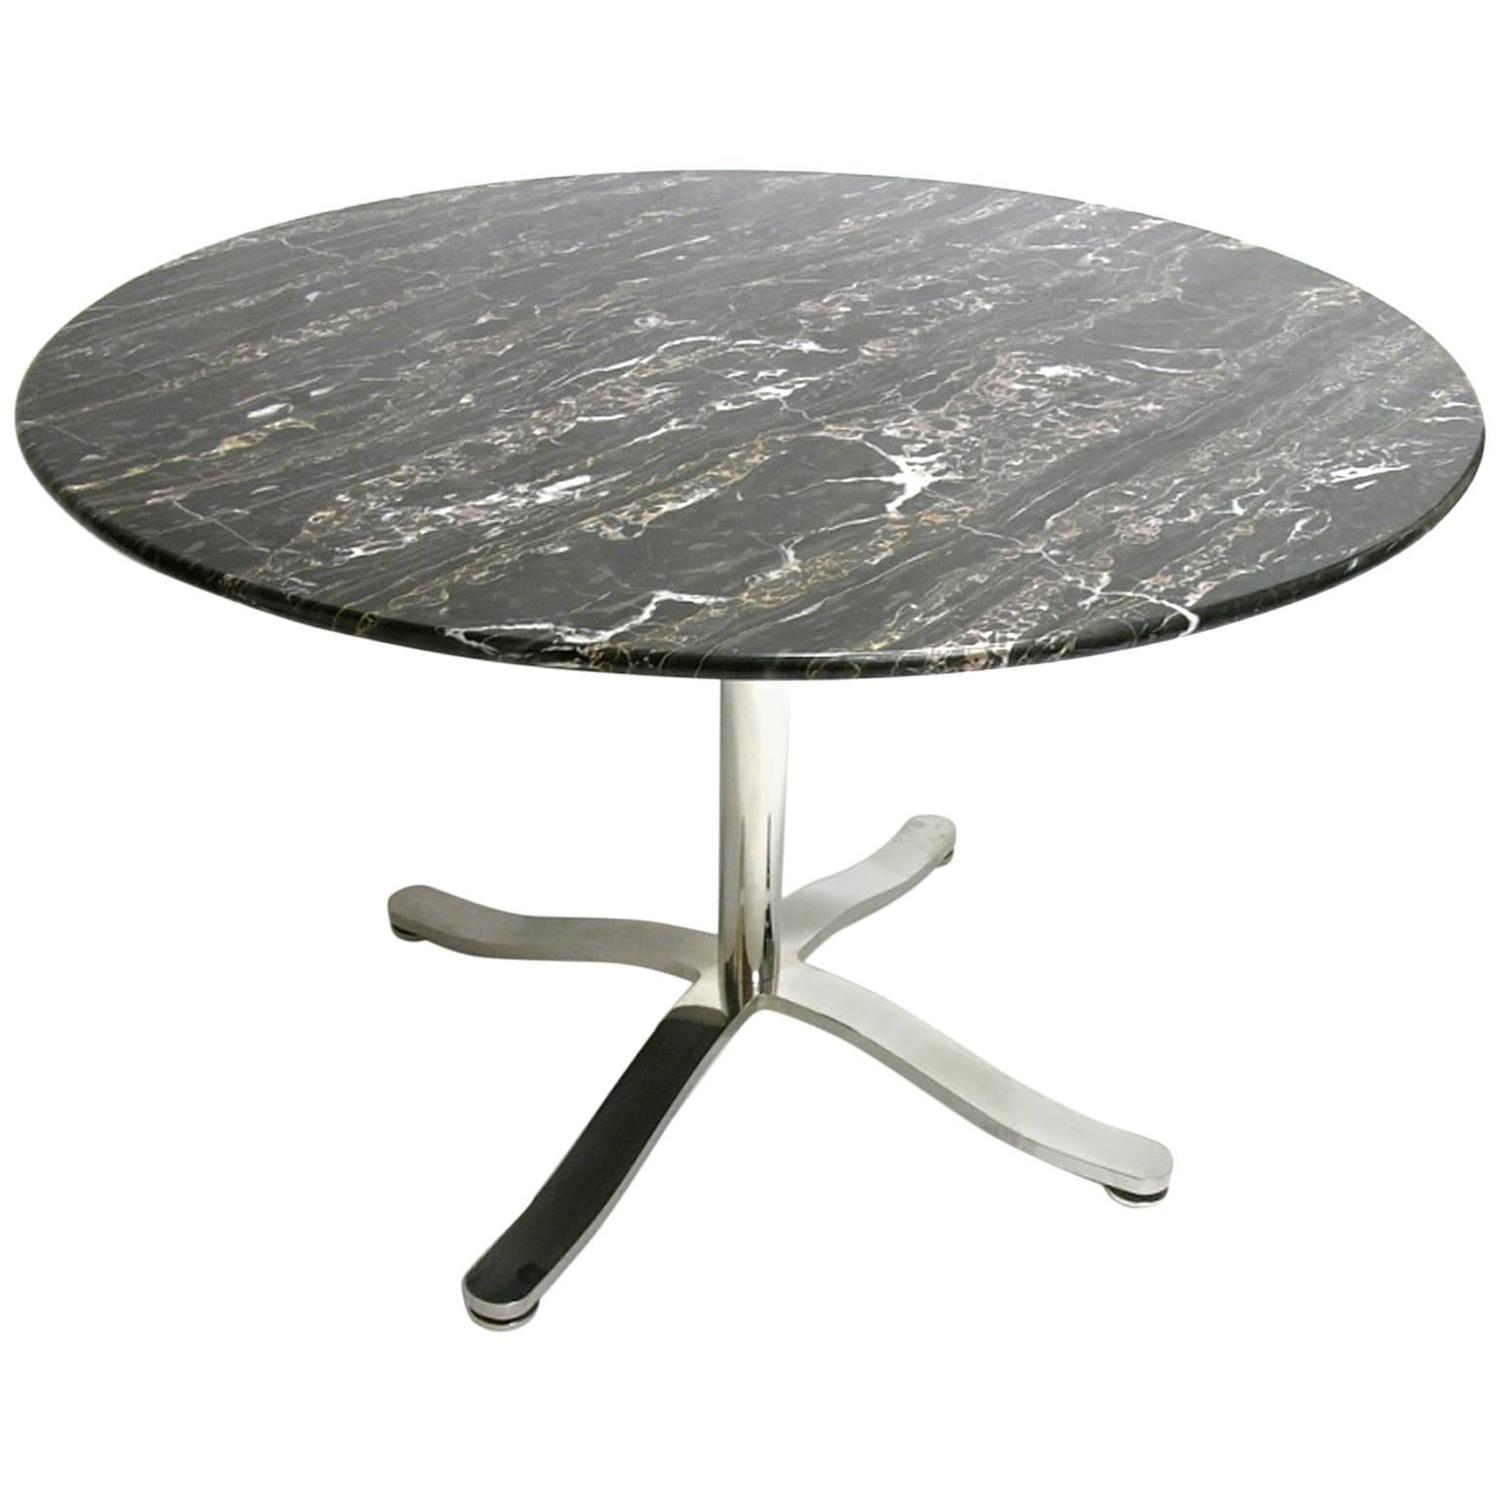 Nicos Zographos Alpha Pedestal Table With Stunning Black Marble Top